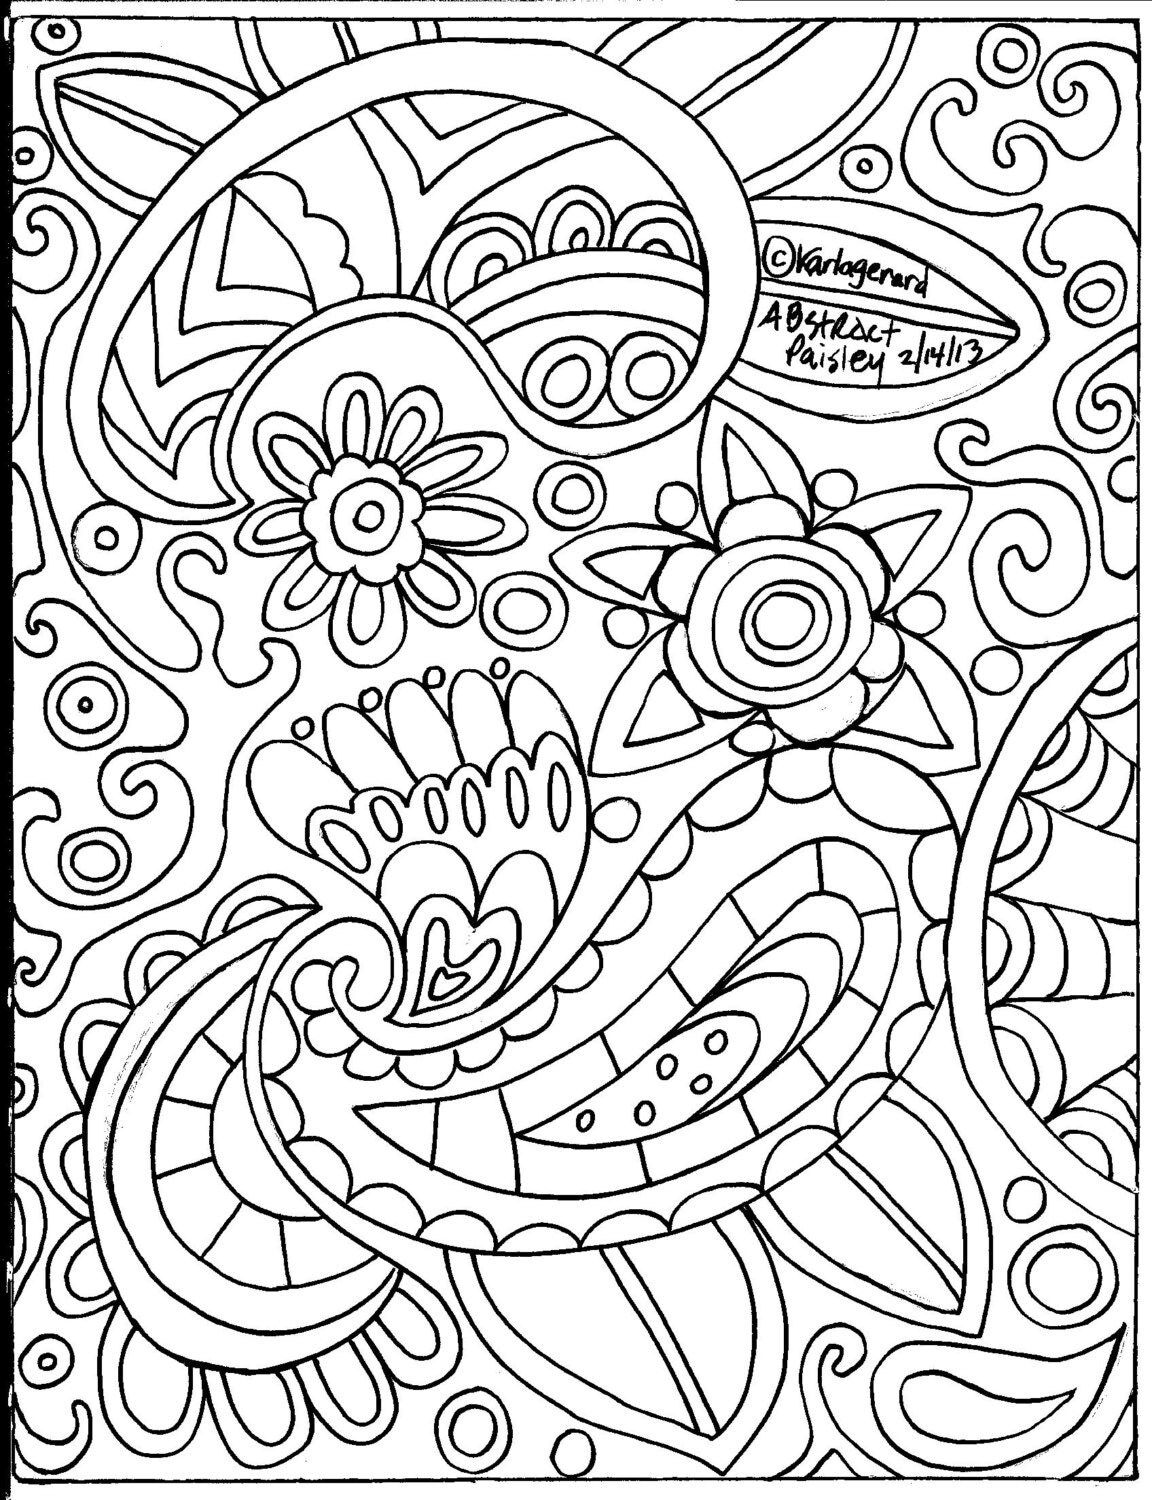 paisley coloring pages - rug hooking paper pattern abstract paisley folk art abstract